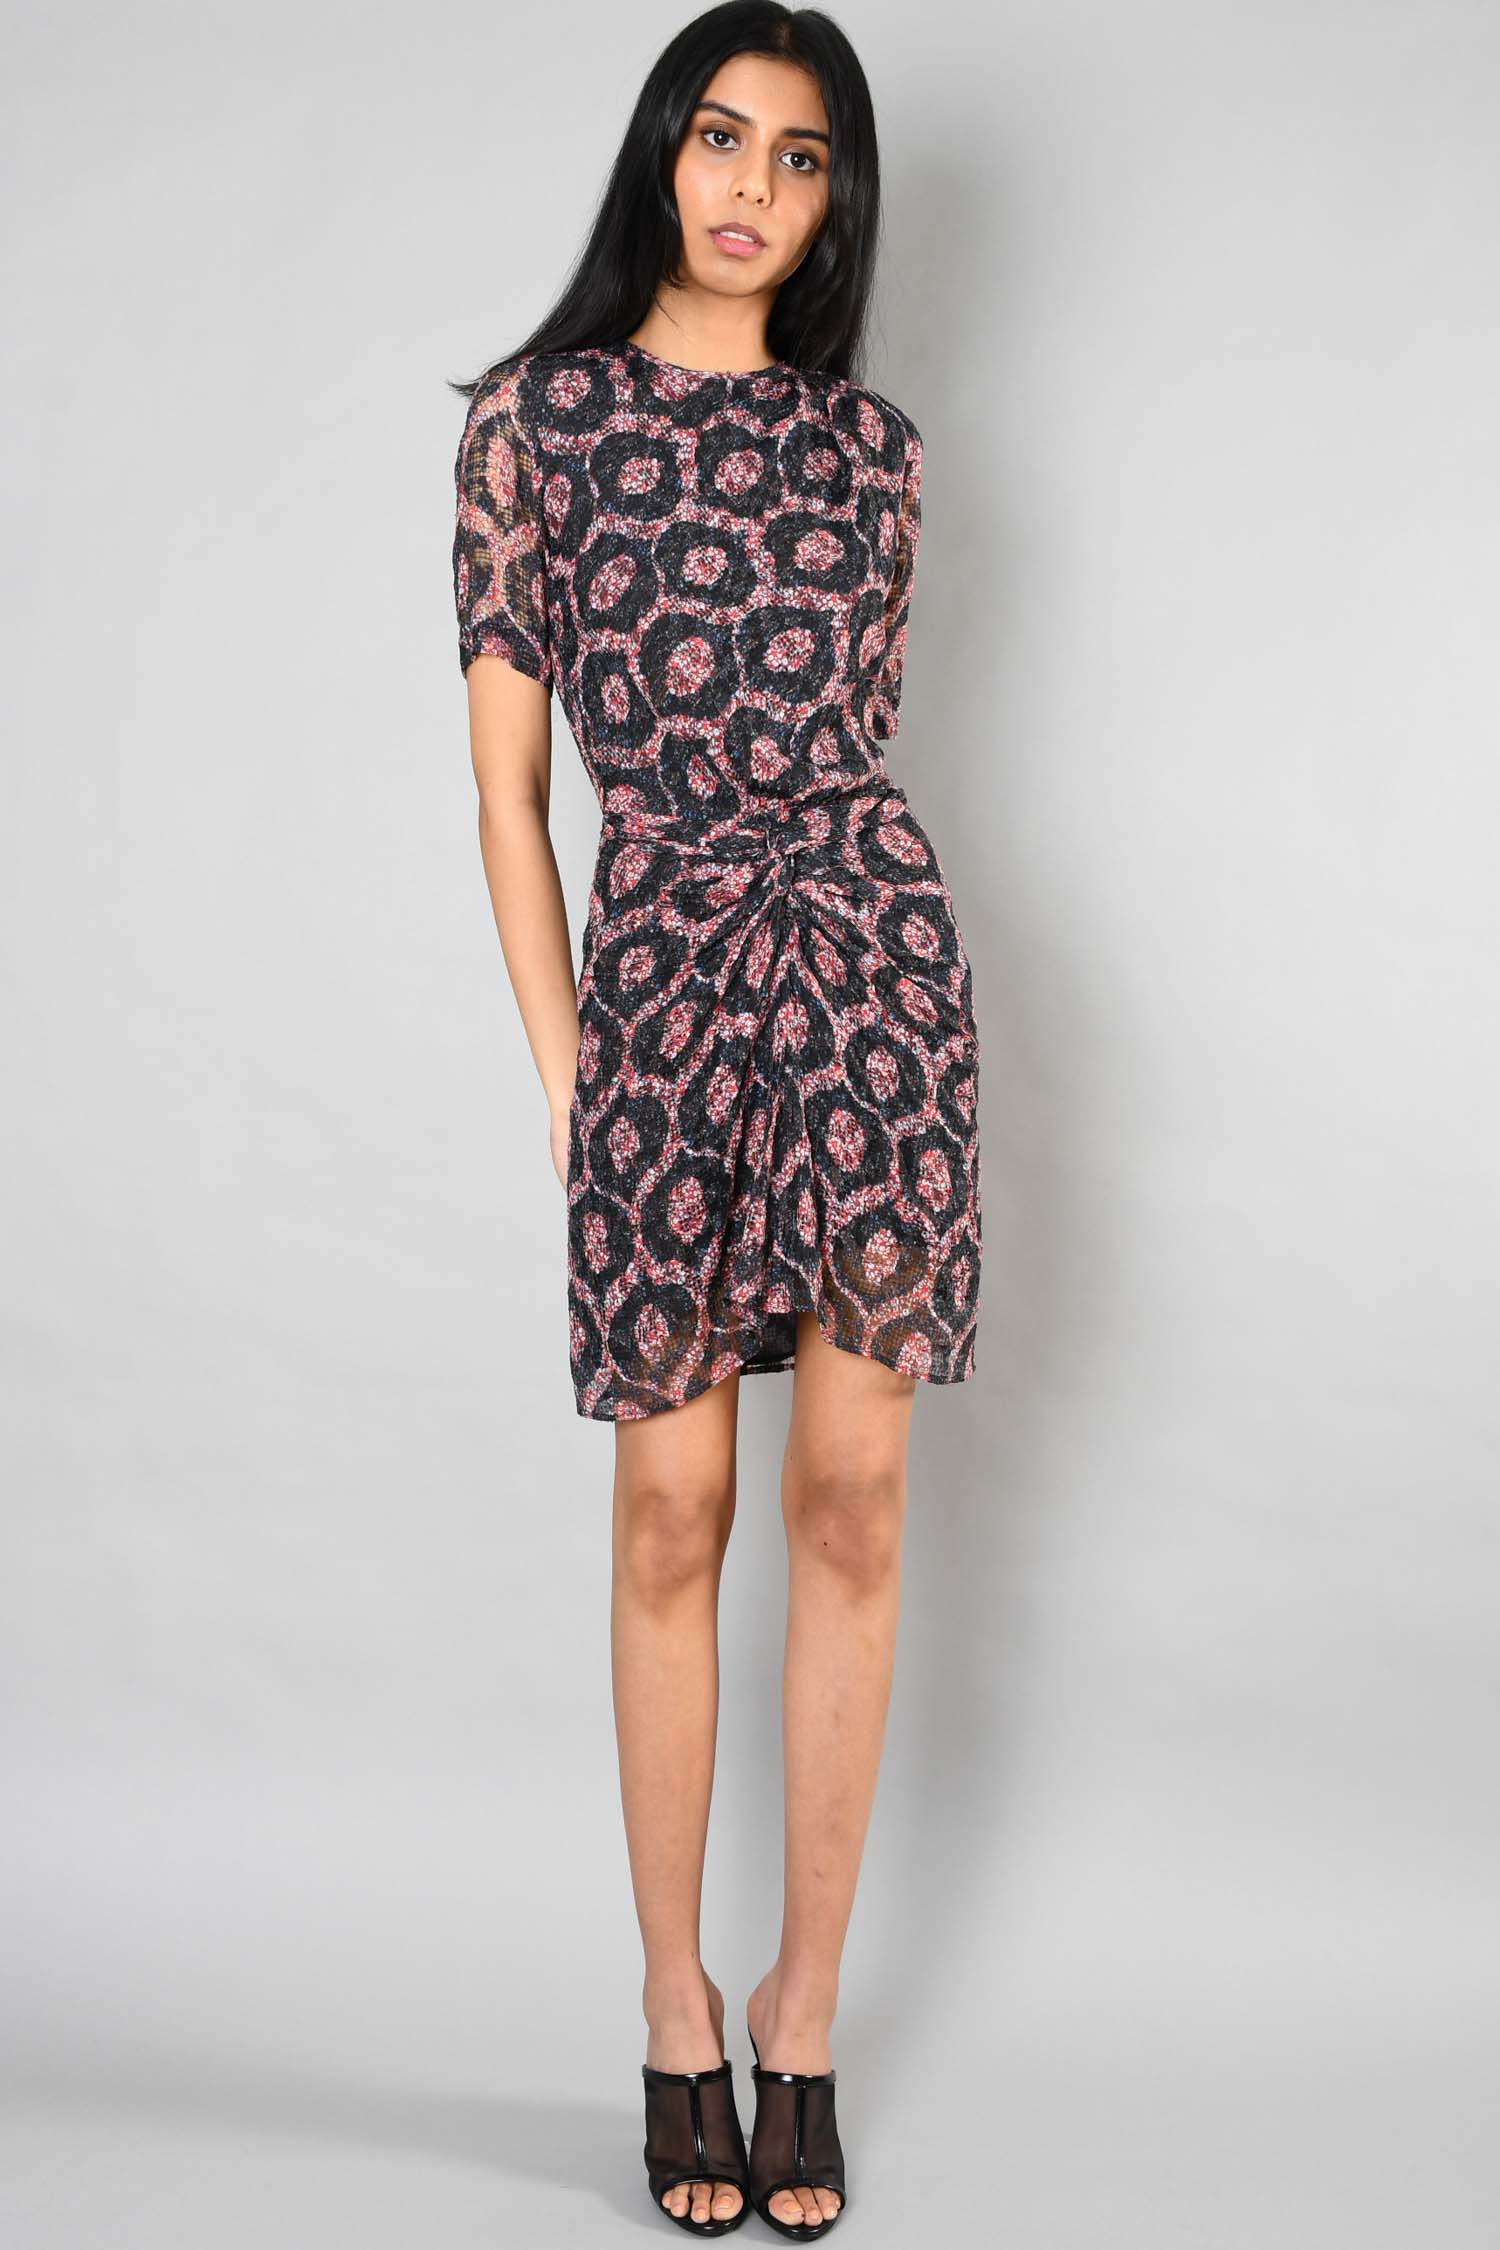 Isabel Marant Red/Black Printed S/S Cinched Waist Silk Dress Size 34